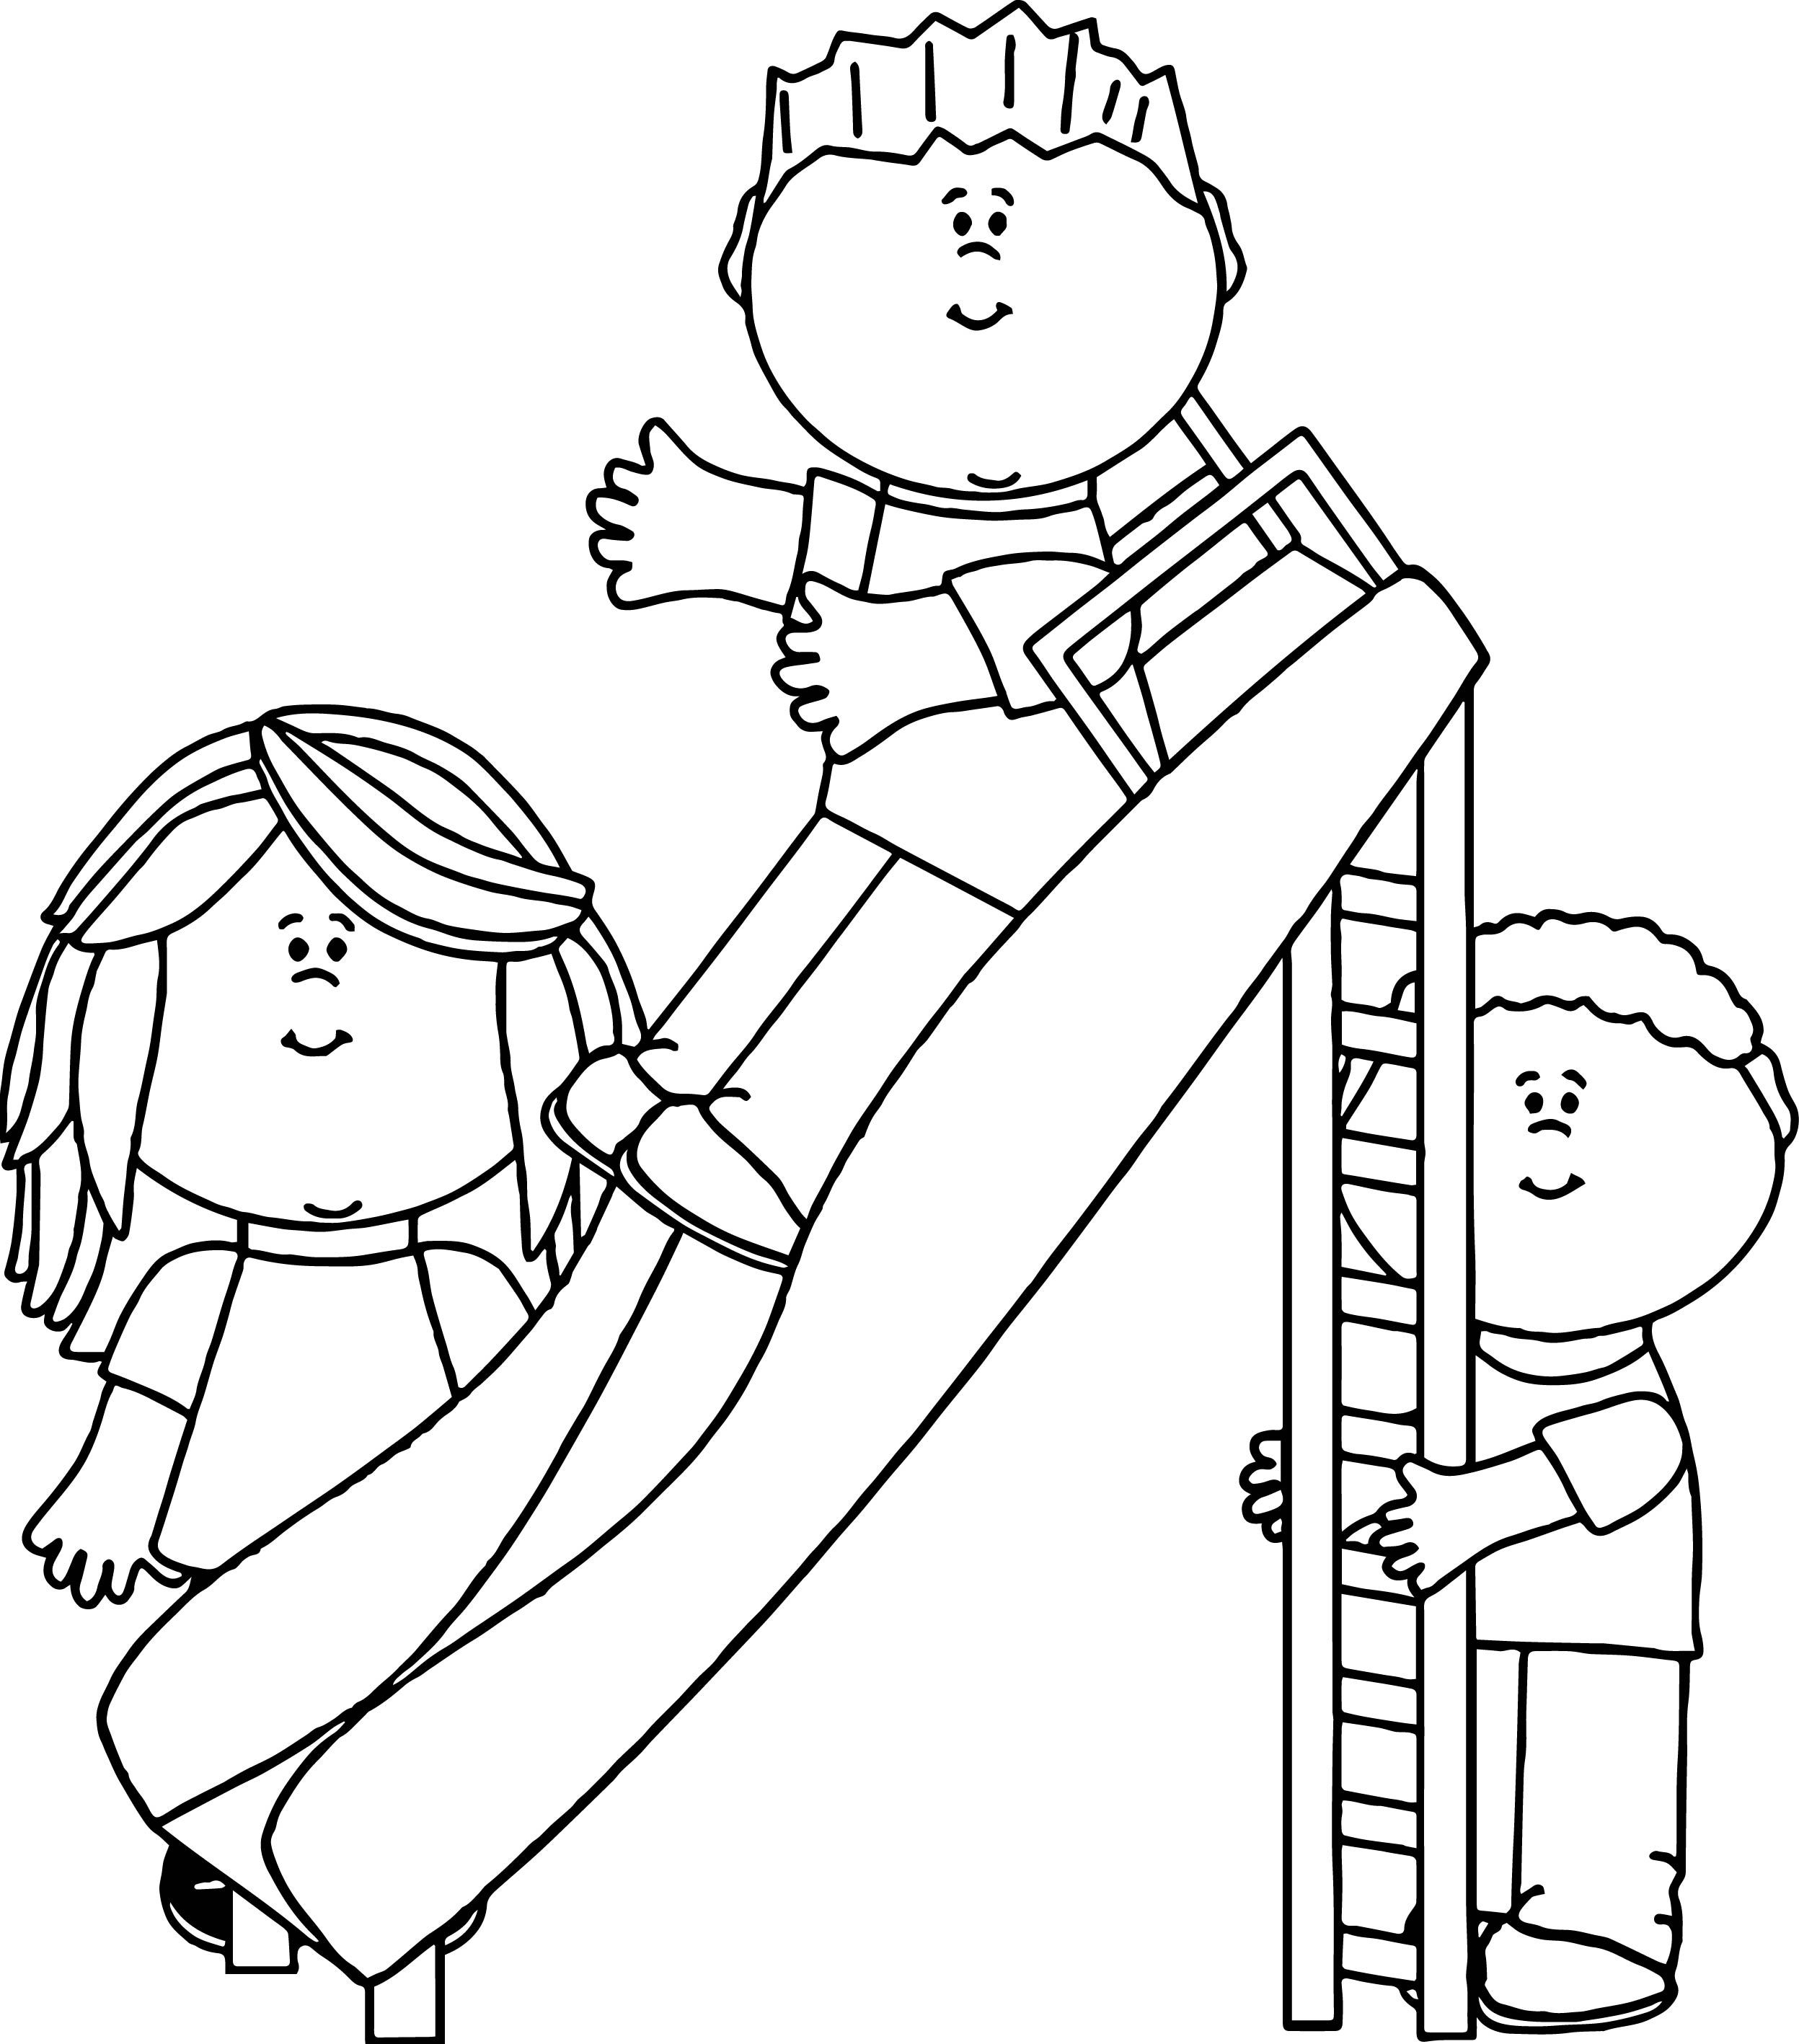 Awesome Kids In The Park Coloring Page Coloring Pages Cool Coloring Pages Coloring Books